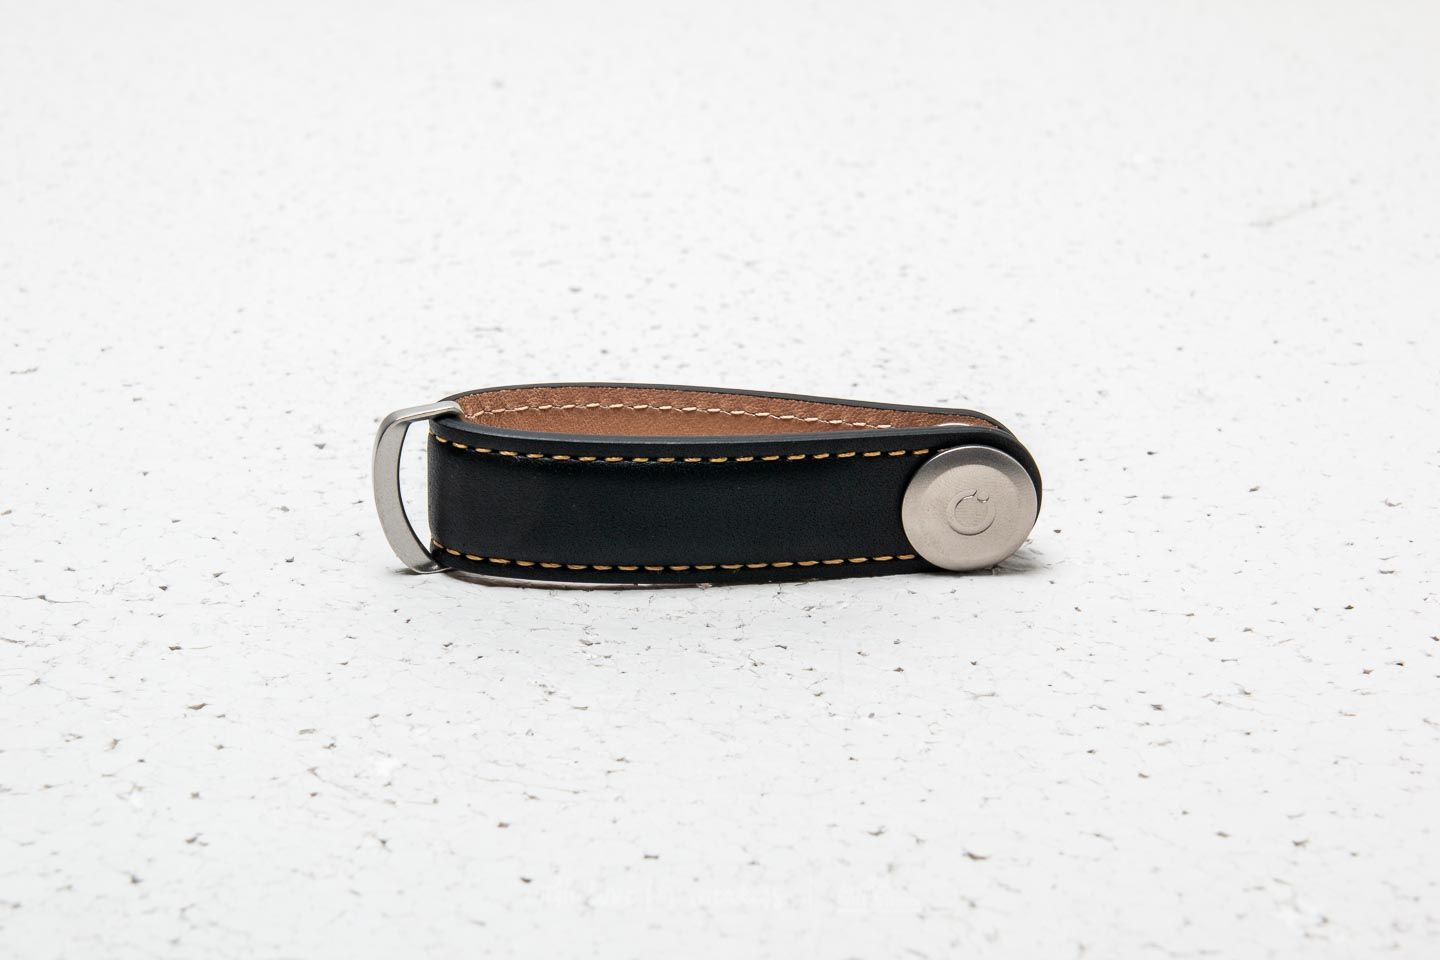 Orbitkey 2.0 Leather Black/ Tan